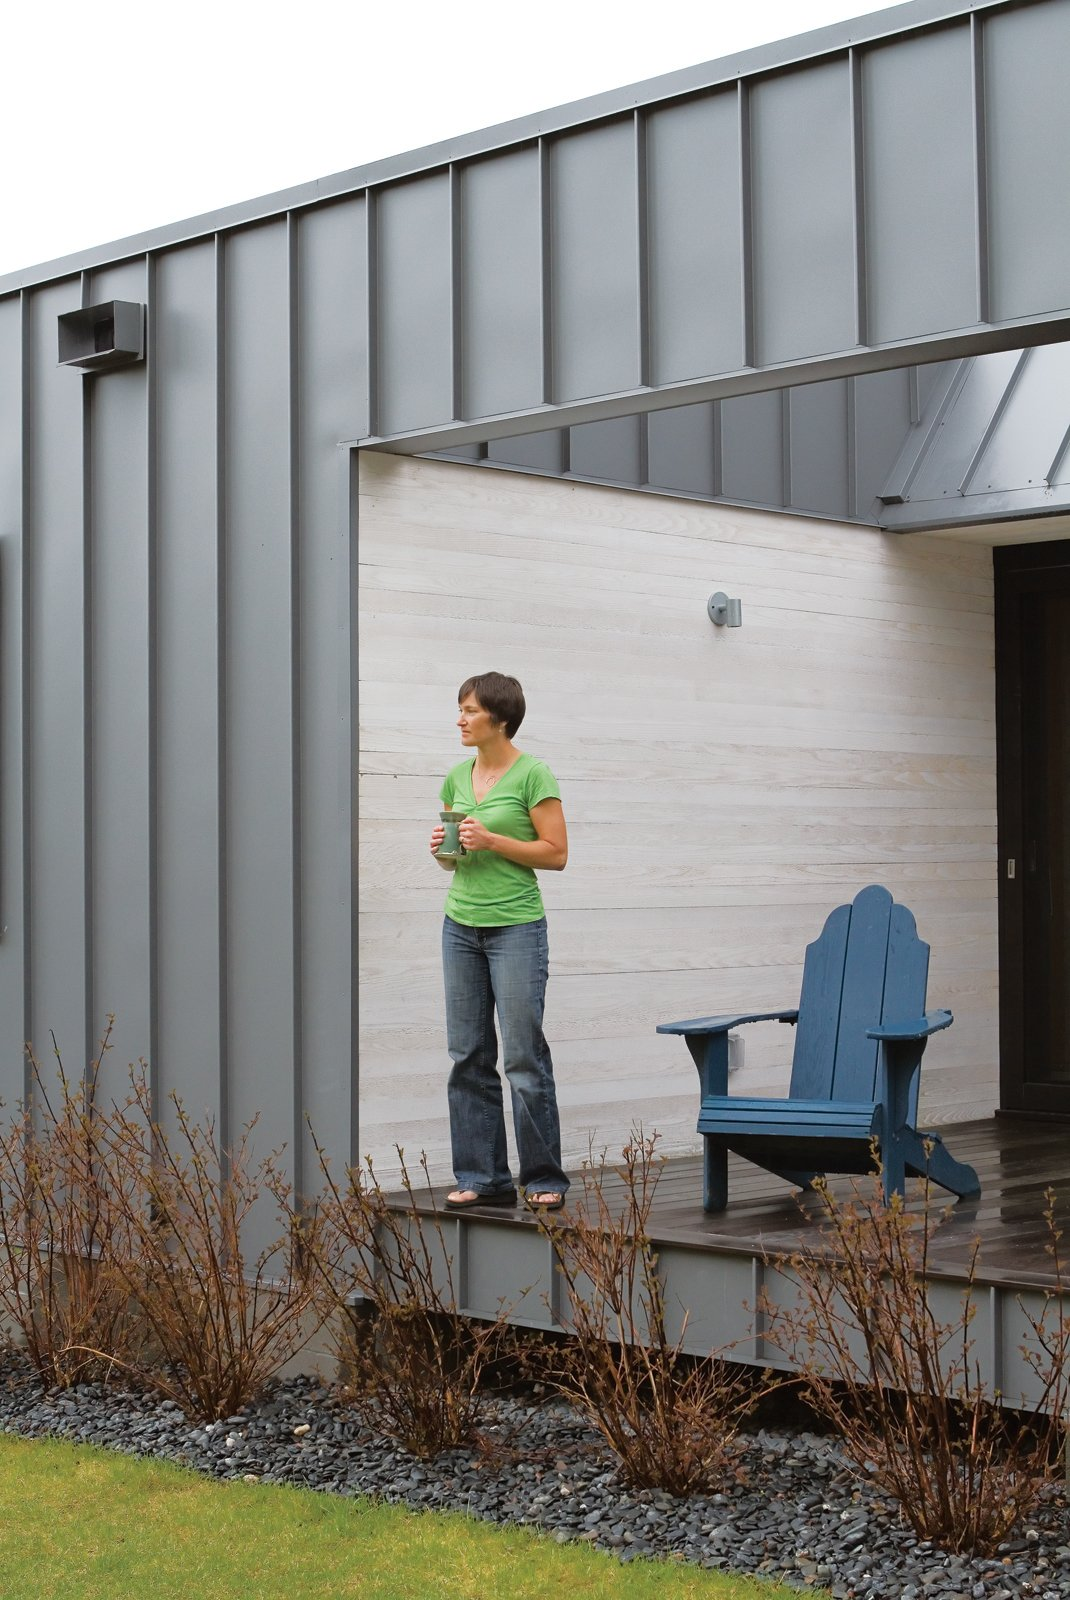 """Hands OffArchitect Steve Bull aimed to create a home for Leinicke and Navitsky that was virtually maintenance-free. To that end, the exterior is standing-seam metal siding that will never need to be painted; the cedar walls are finished with an eco-friendly Osmo semisolid stain rather than paint; and the floors are end-grain fir, a recycled by-product of door manufacturing that """"is so tough it will outlast most buildings,"""" says Bull.  custombiltmetals.com  osmona.com  oregonlumber.com An Epic Plot - Photo 7 of 10"""